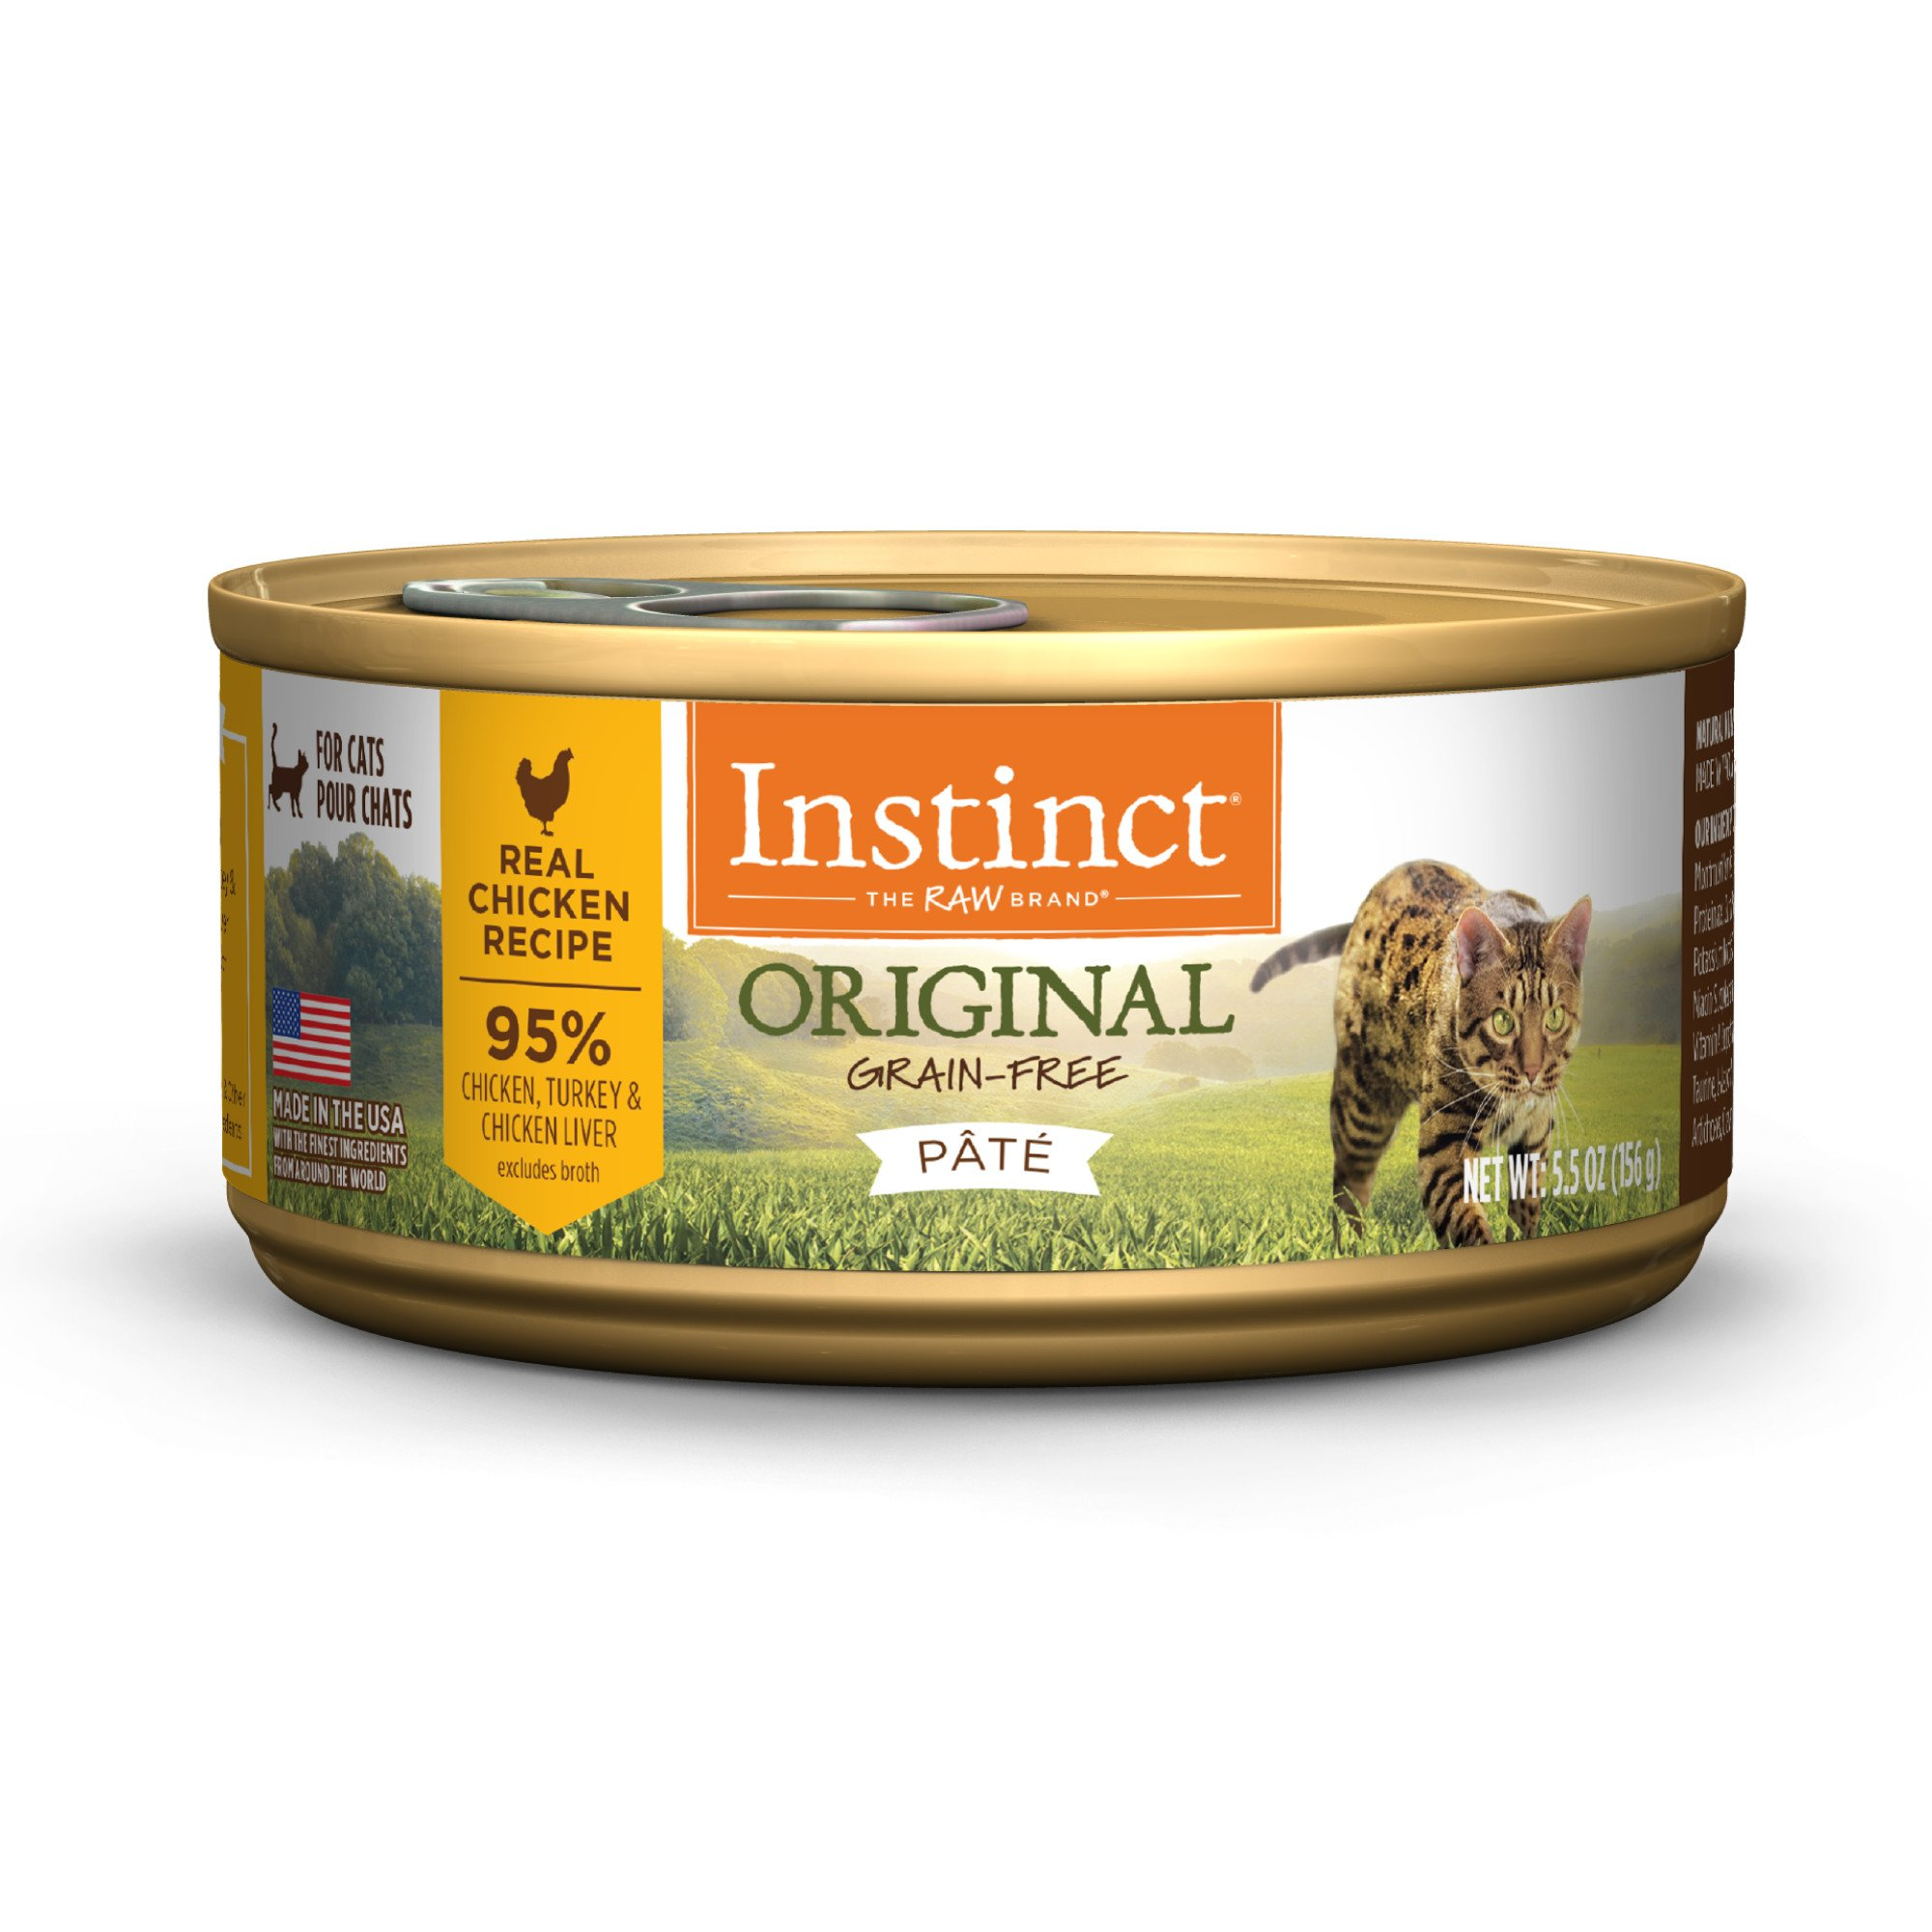 Instinct grain free chicken canned cat food by natures variety petco forumfinder Image collections